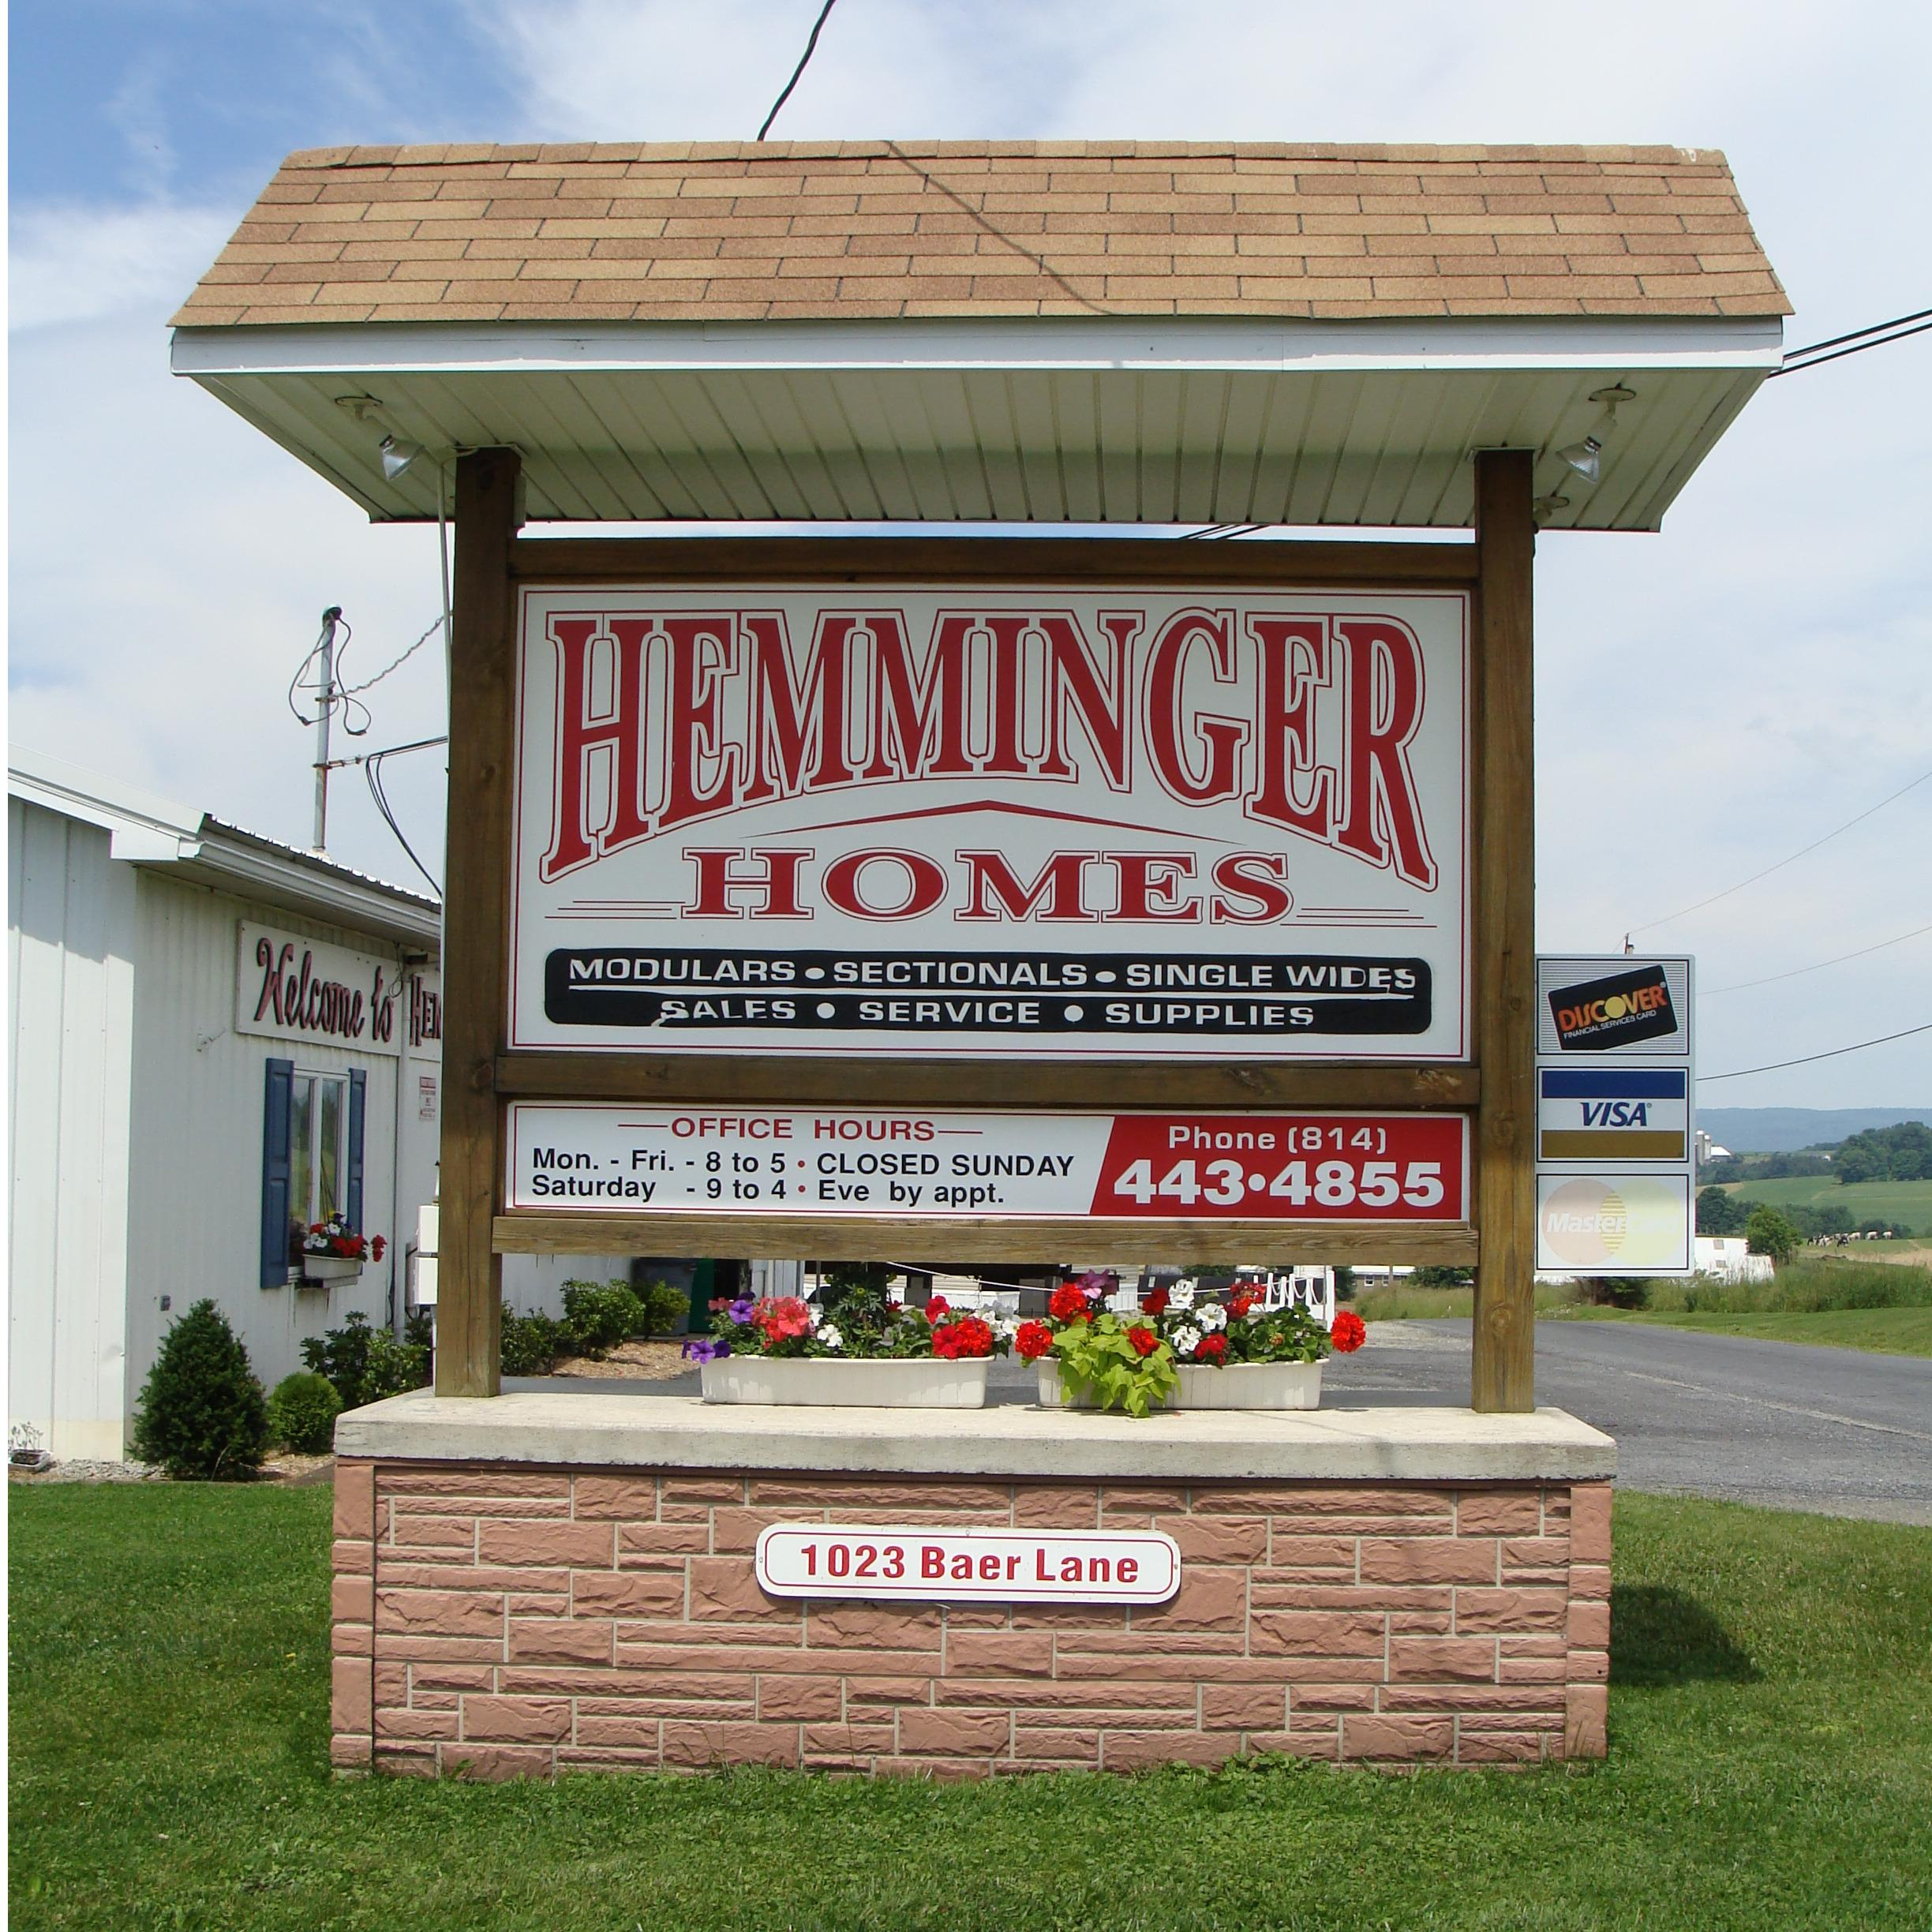 Hemminger Homes, Inc.